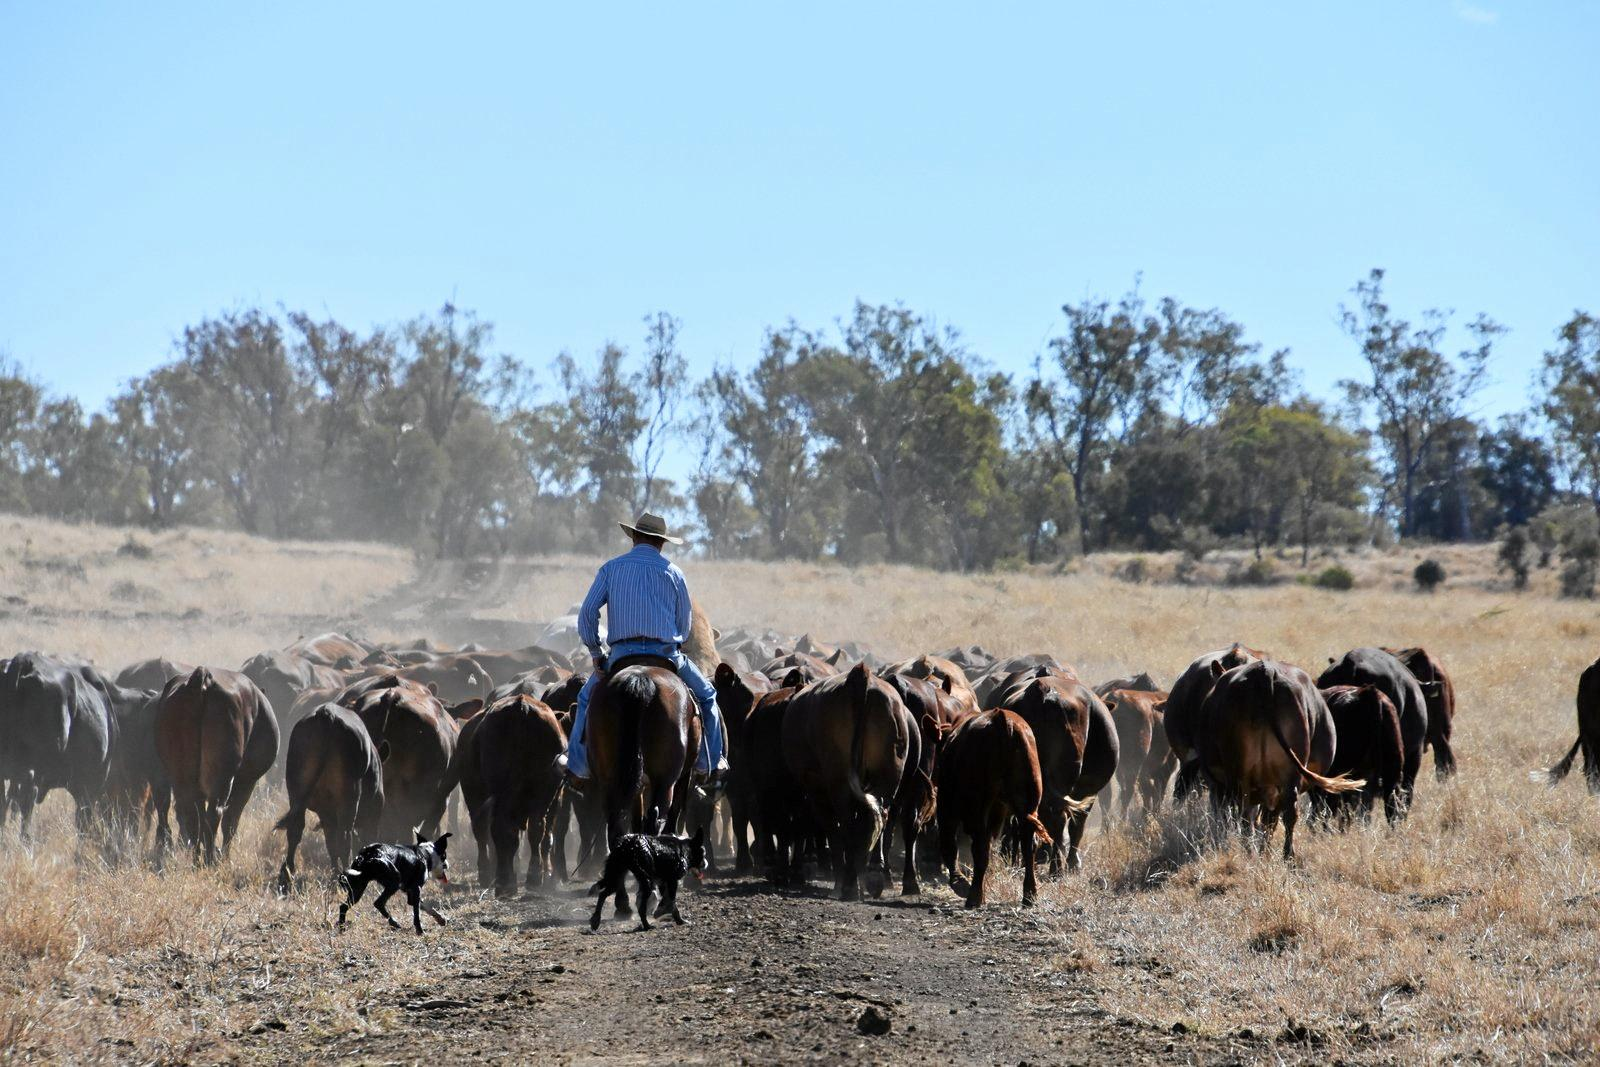 Tim droving some cattle with his trusty mates by his side.